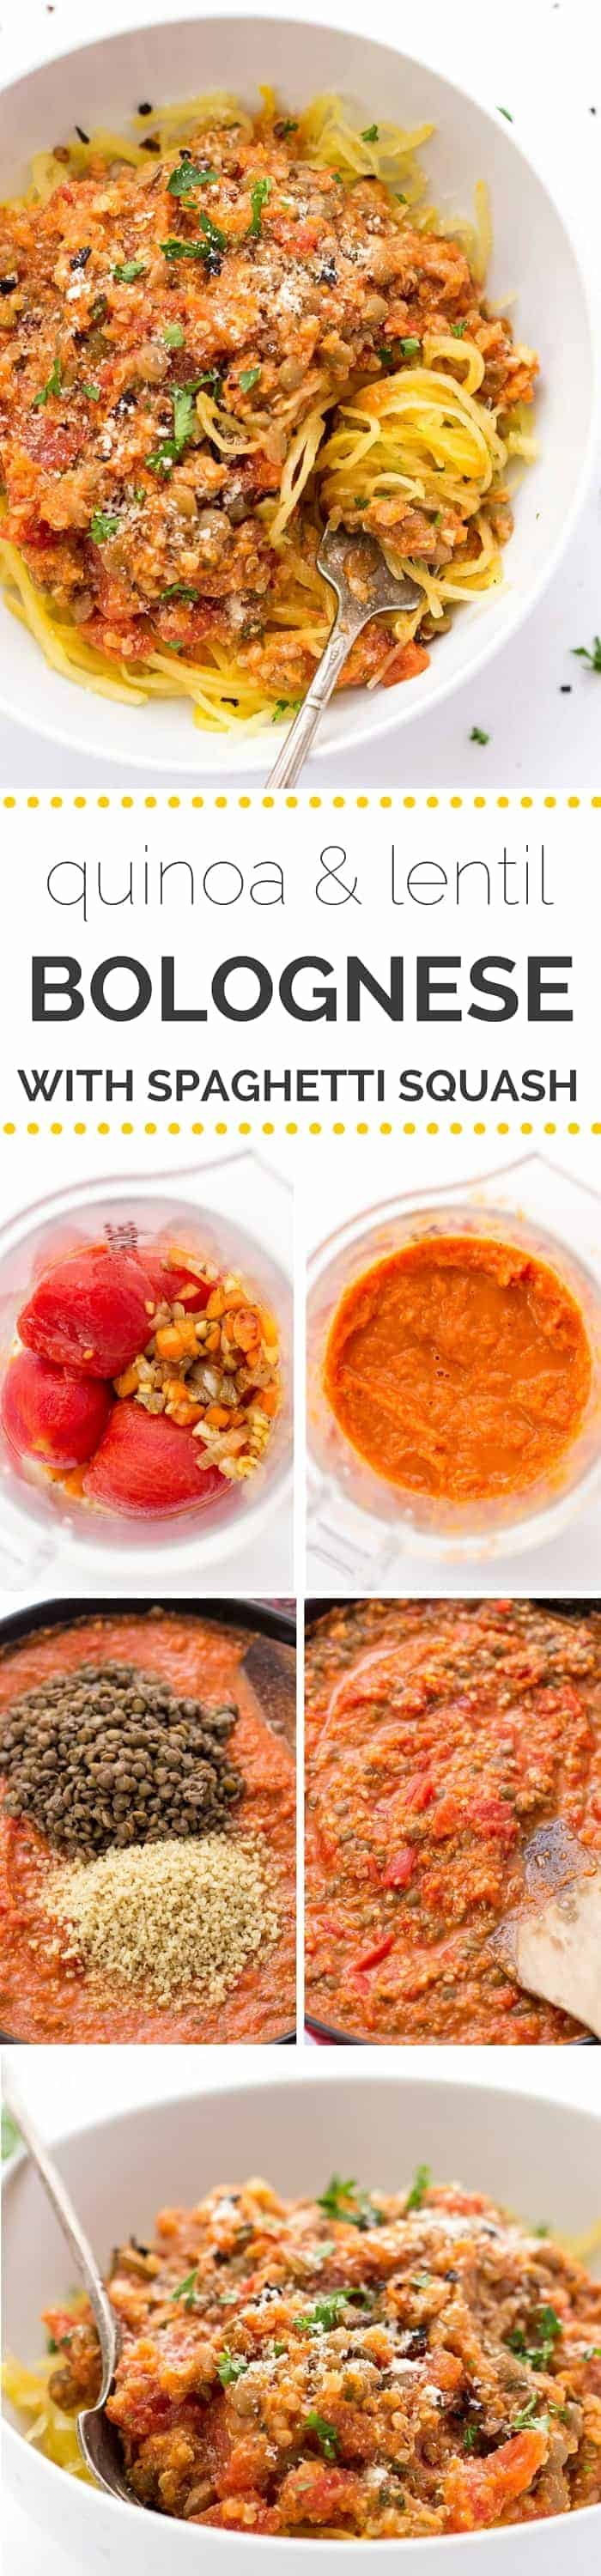 This super HEALTHY & VEGAN bolognese sauce is made with lentils + quinoa -- it's meaty without the meat products! [gf + df]